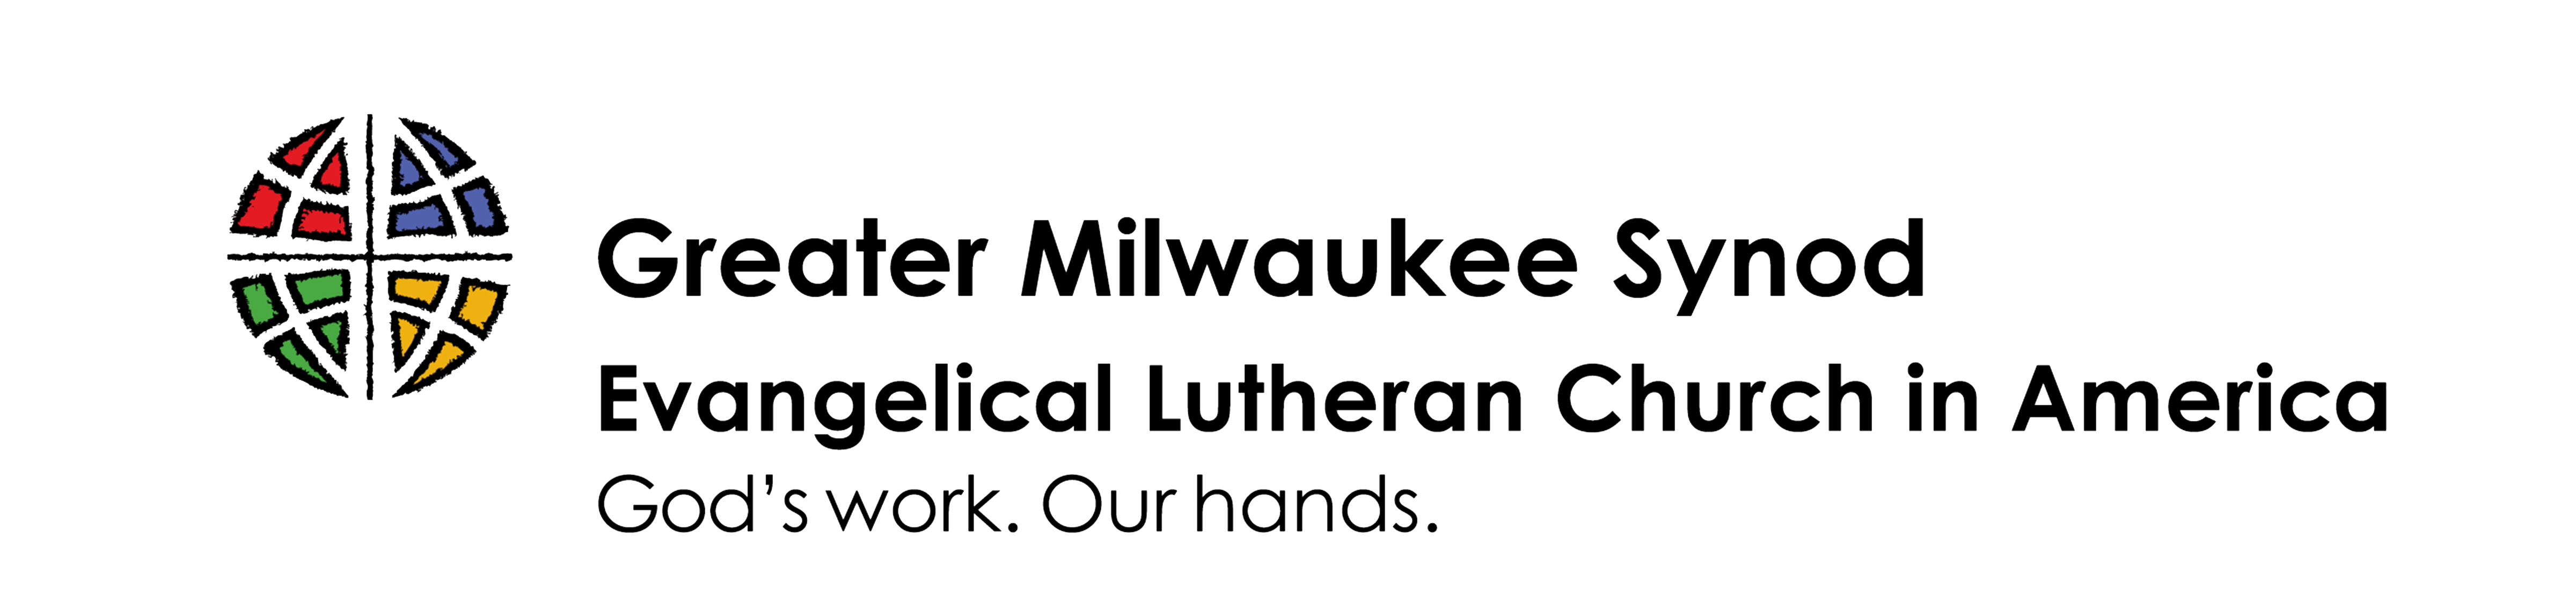 Greater Milwaukee Synod